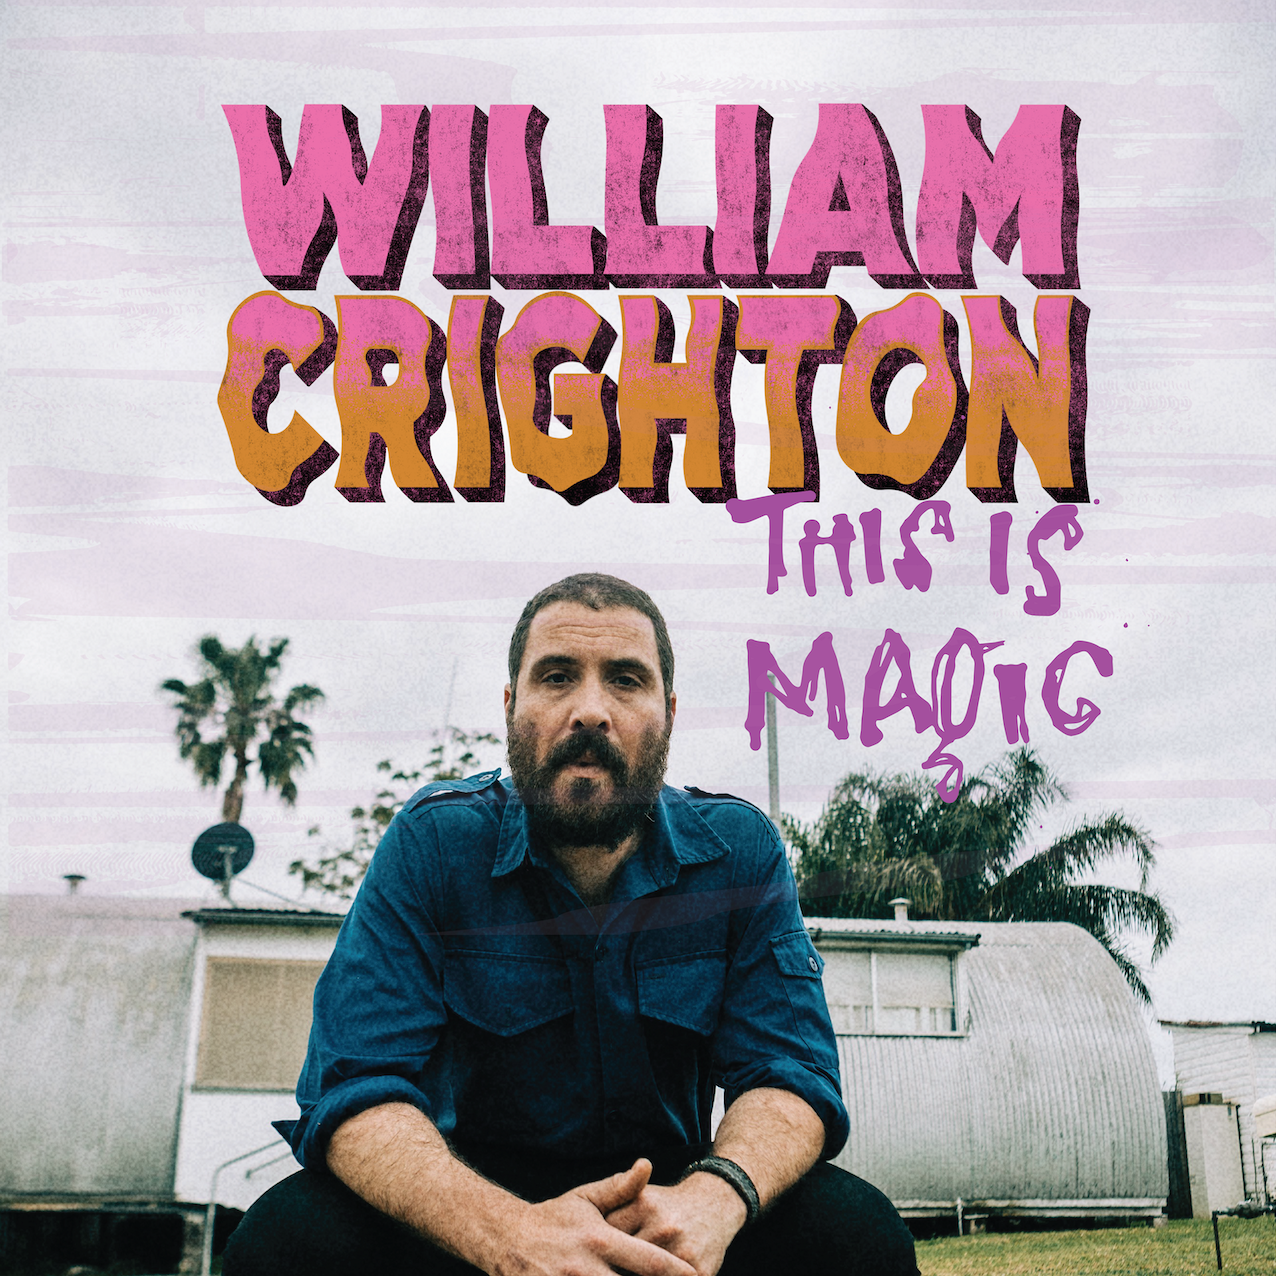 WILLIAM CRIGHTON 'THIS IS MAGIC' NEW SINGLE & VIDEO OUT NOW!